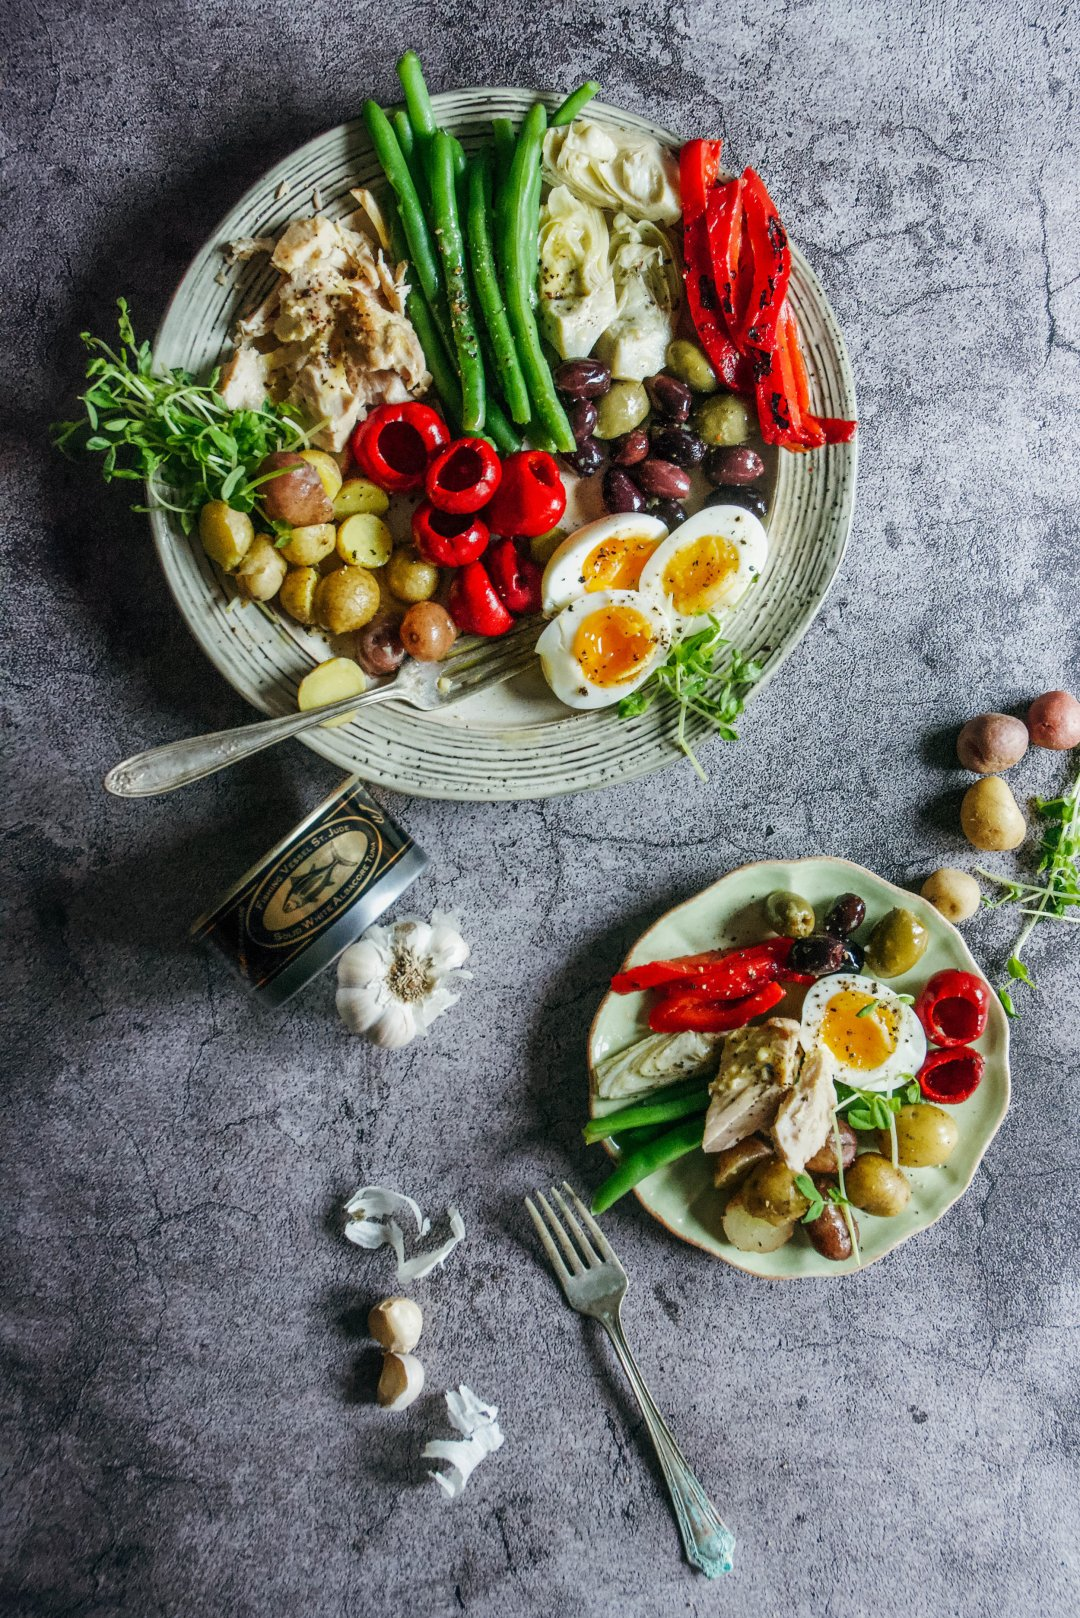 Salad Nicoise may just be the most perfect salad invented. Tasty St Jude Tuna works beautifully with, crunch green beans, creamy potatoes, soft boiled eggs, briny vegetables and tangy dressing. It's one recipe that's on repeat in my house. #saladnicoise #nicoisesalad #tunanicoisesalad #tunanicoise #calmeats #salad #pleosalad #whole30salad #whole30 #paleo #glutenfree #dairyfree #realfood #stjudetuna